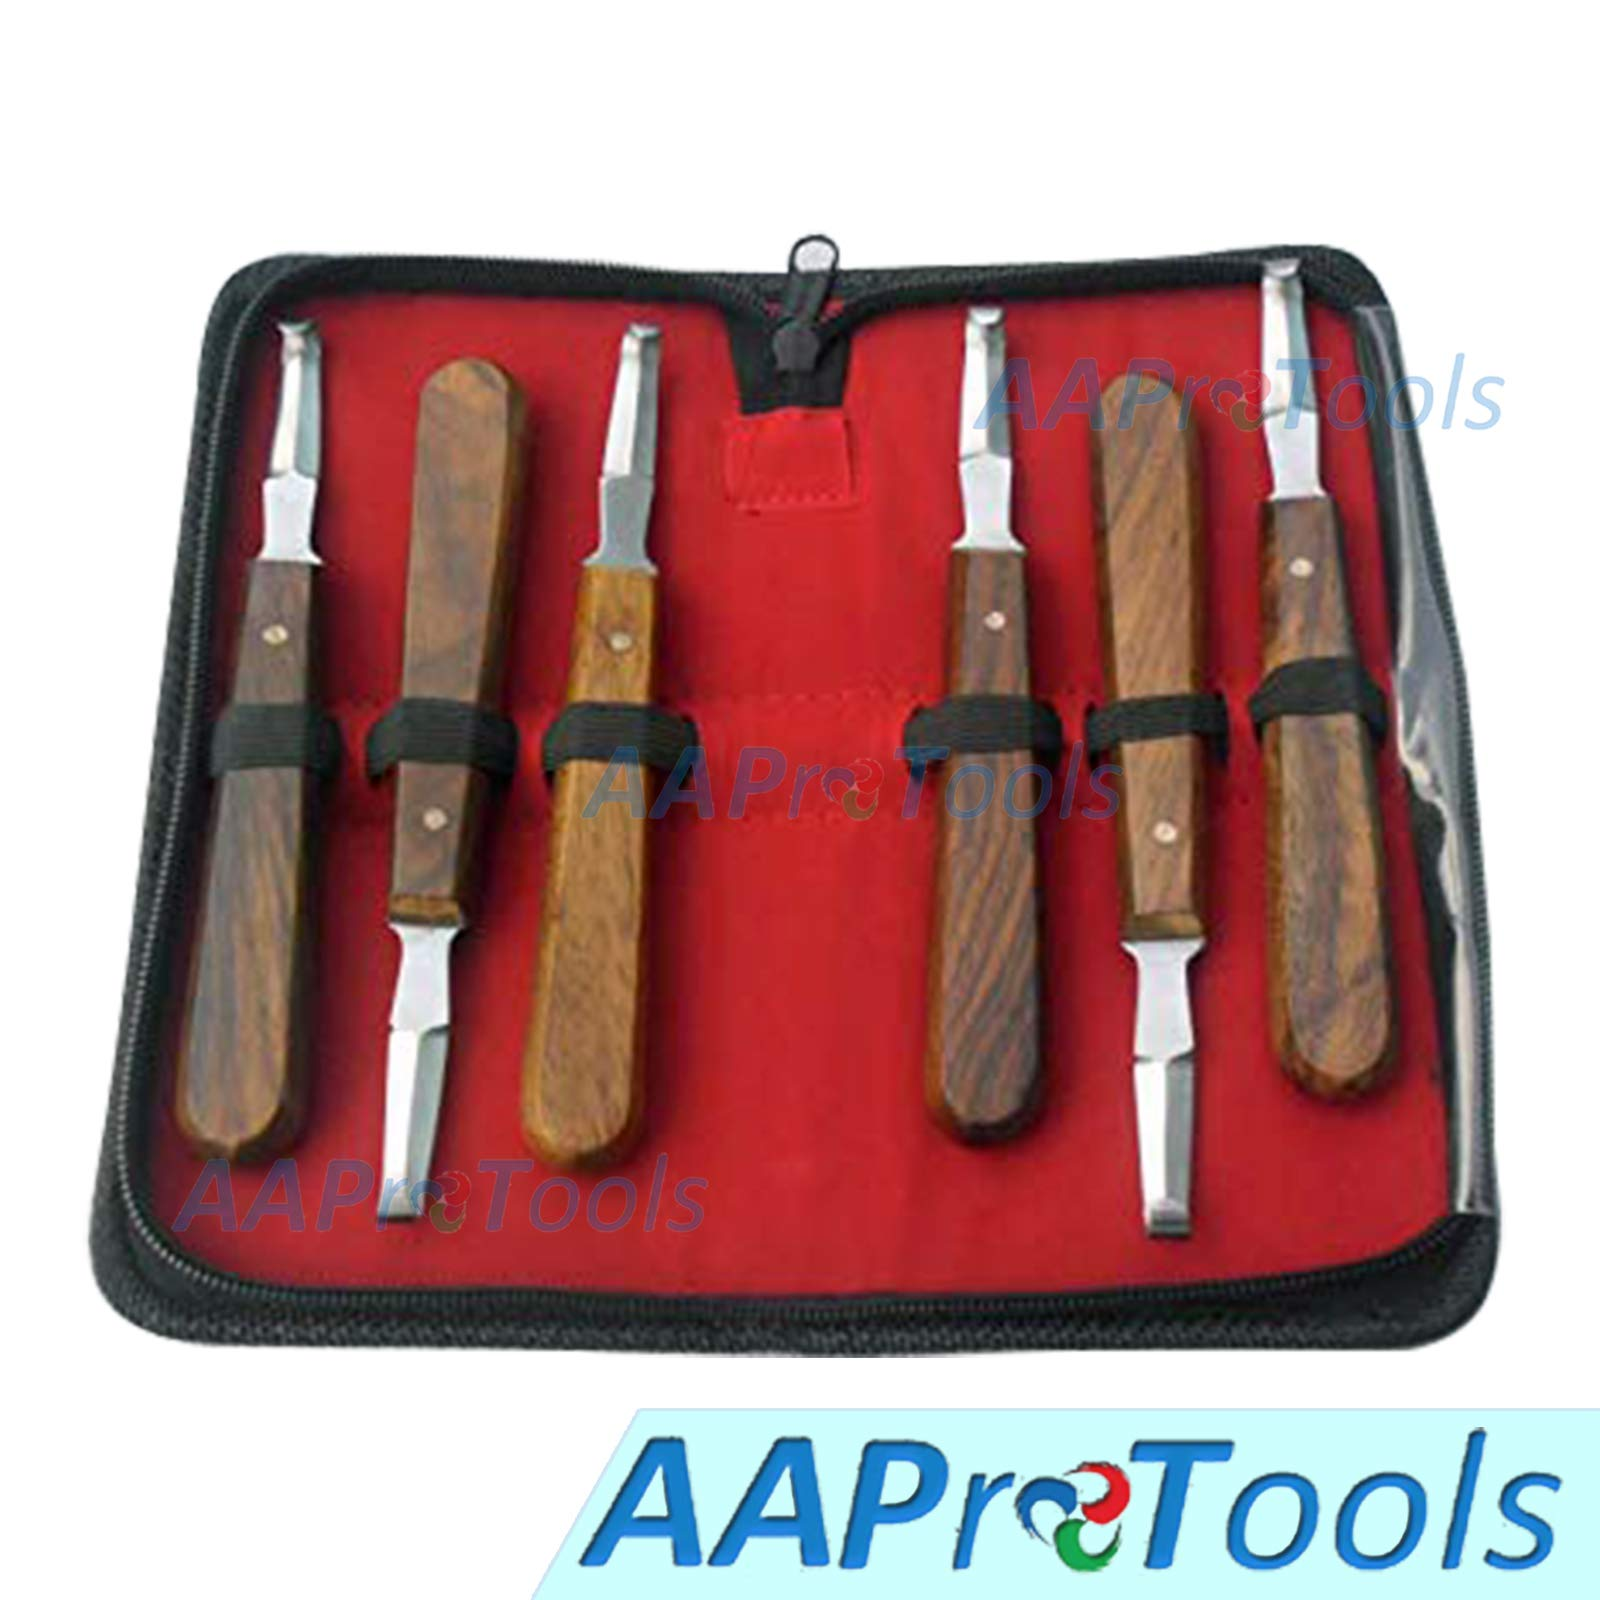 AAProTools 6 Farrier Hoof Knives Equine Horse Knife by AAProTools